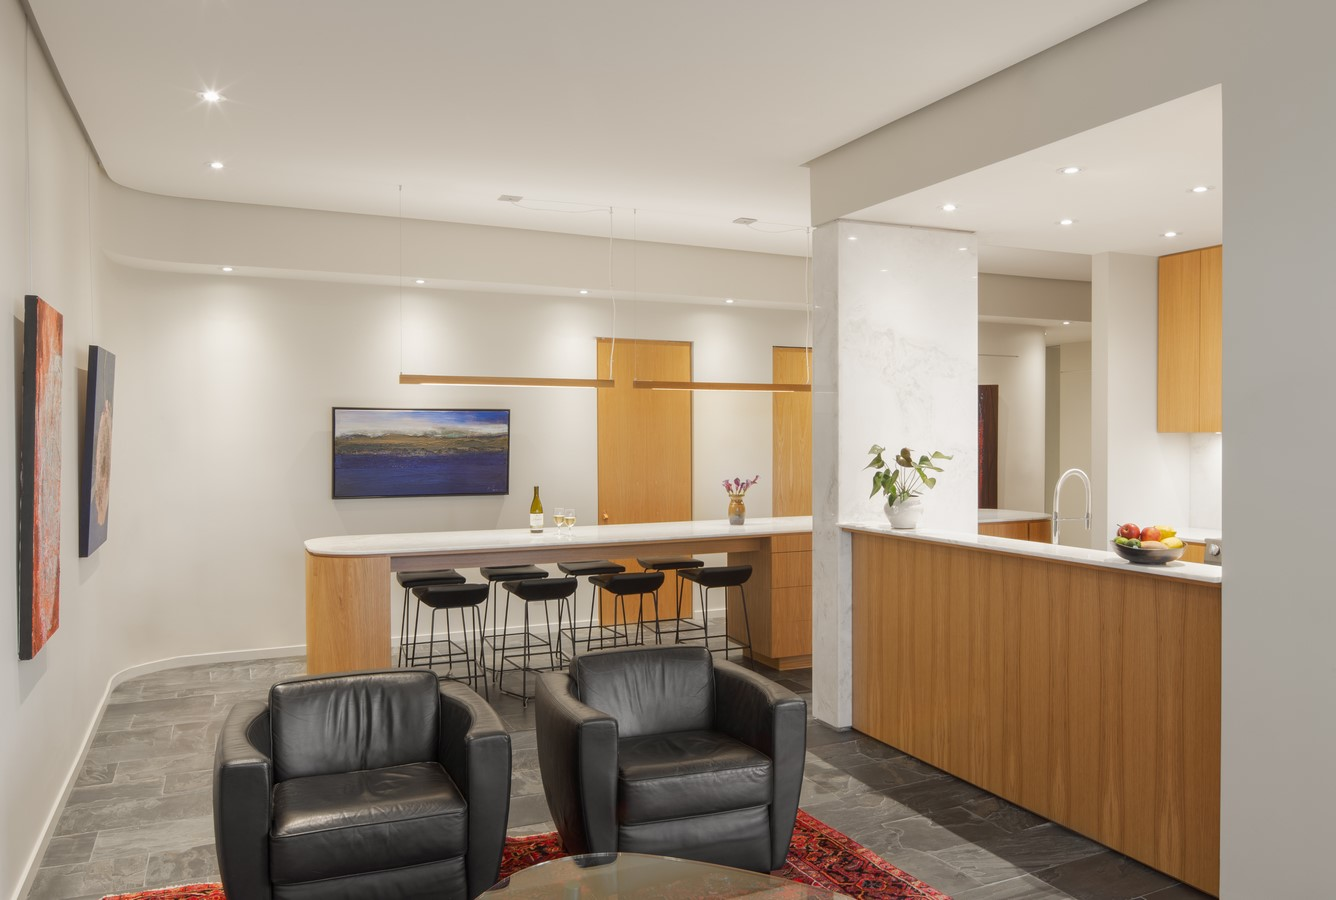 5112 Family Pied-à-terre by Weiss Architecture & Urbanism: Sheet 2